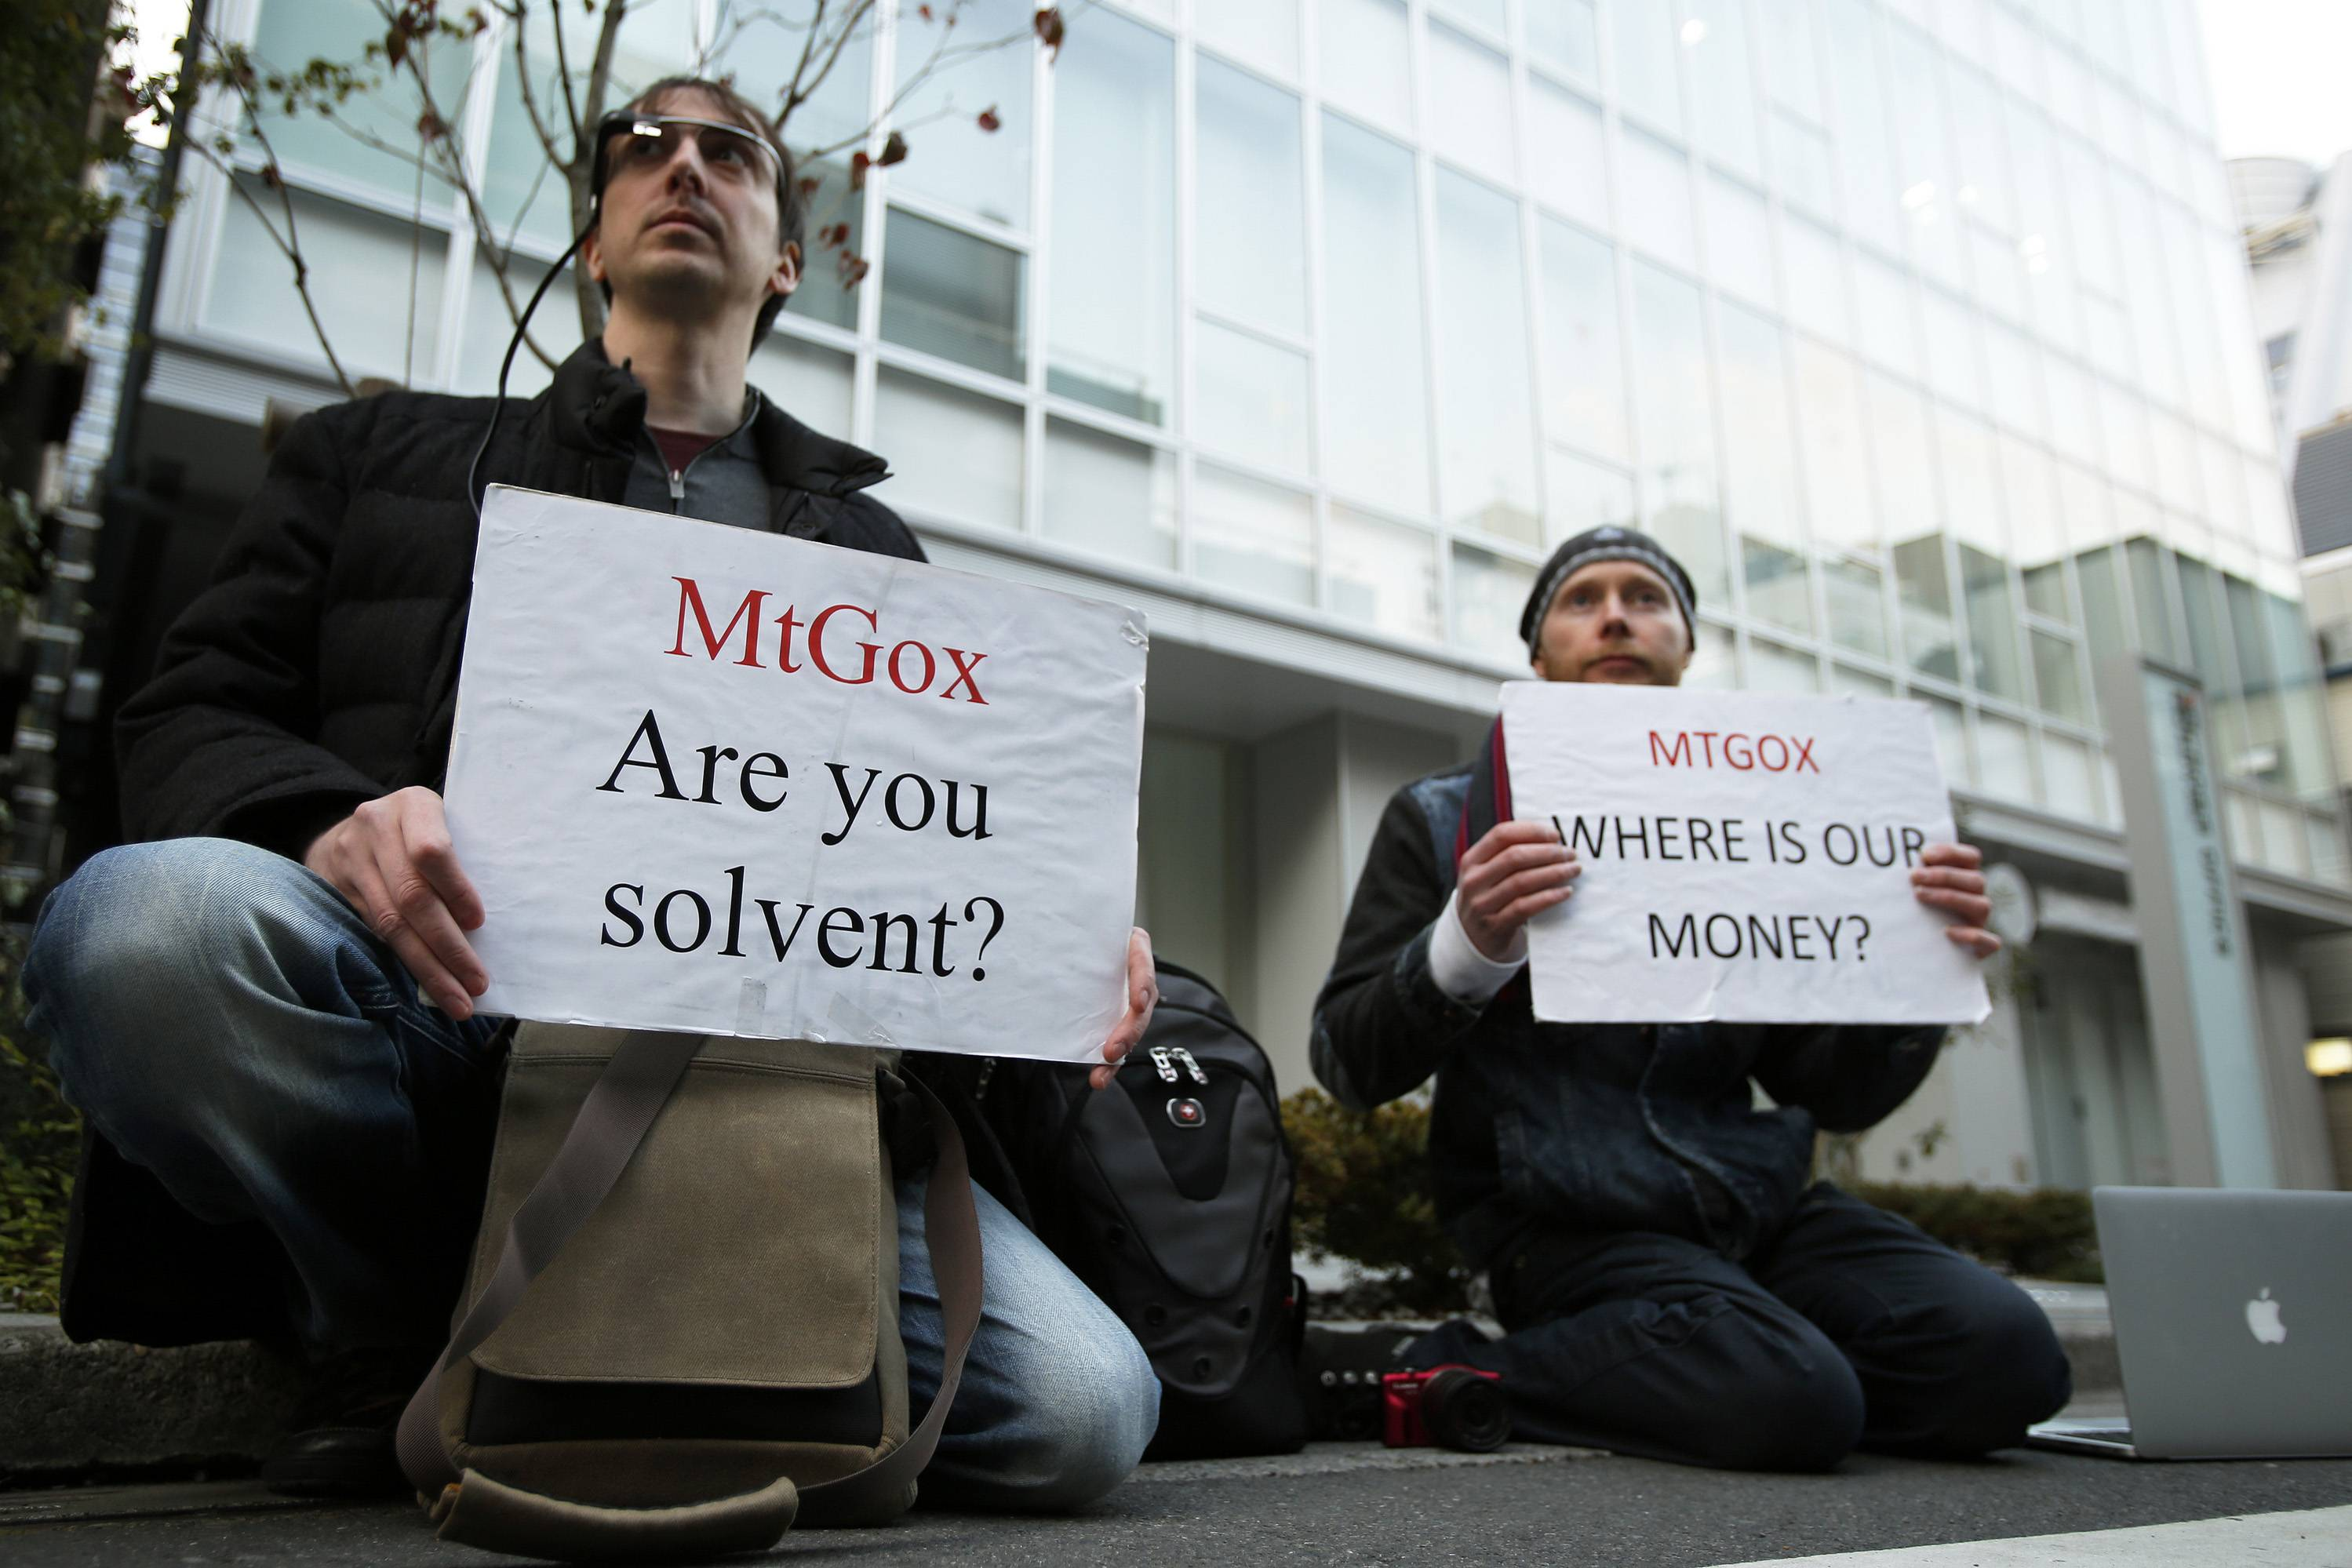 Kolin Burges, right, and another Mt. Gox customer hold placards while protesting outside a building housing the headquarters of Mt. Gox and its parent company Tibanne Co. in Tokyo, Japan.